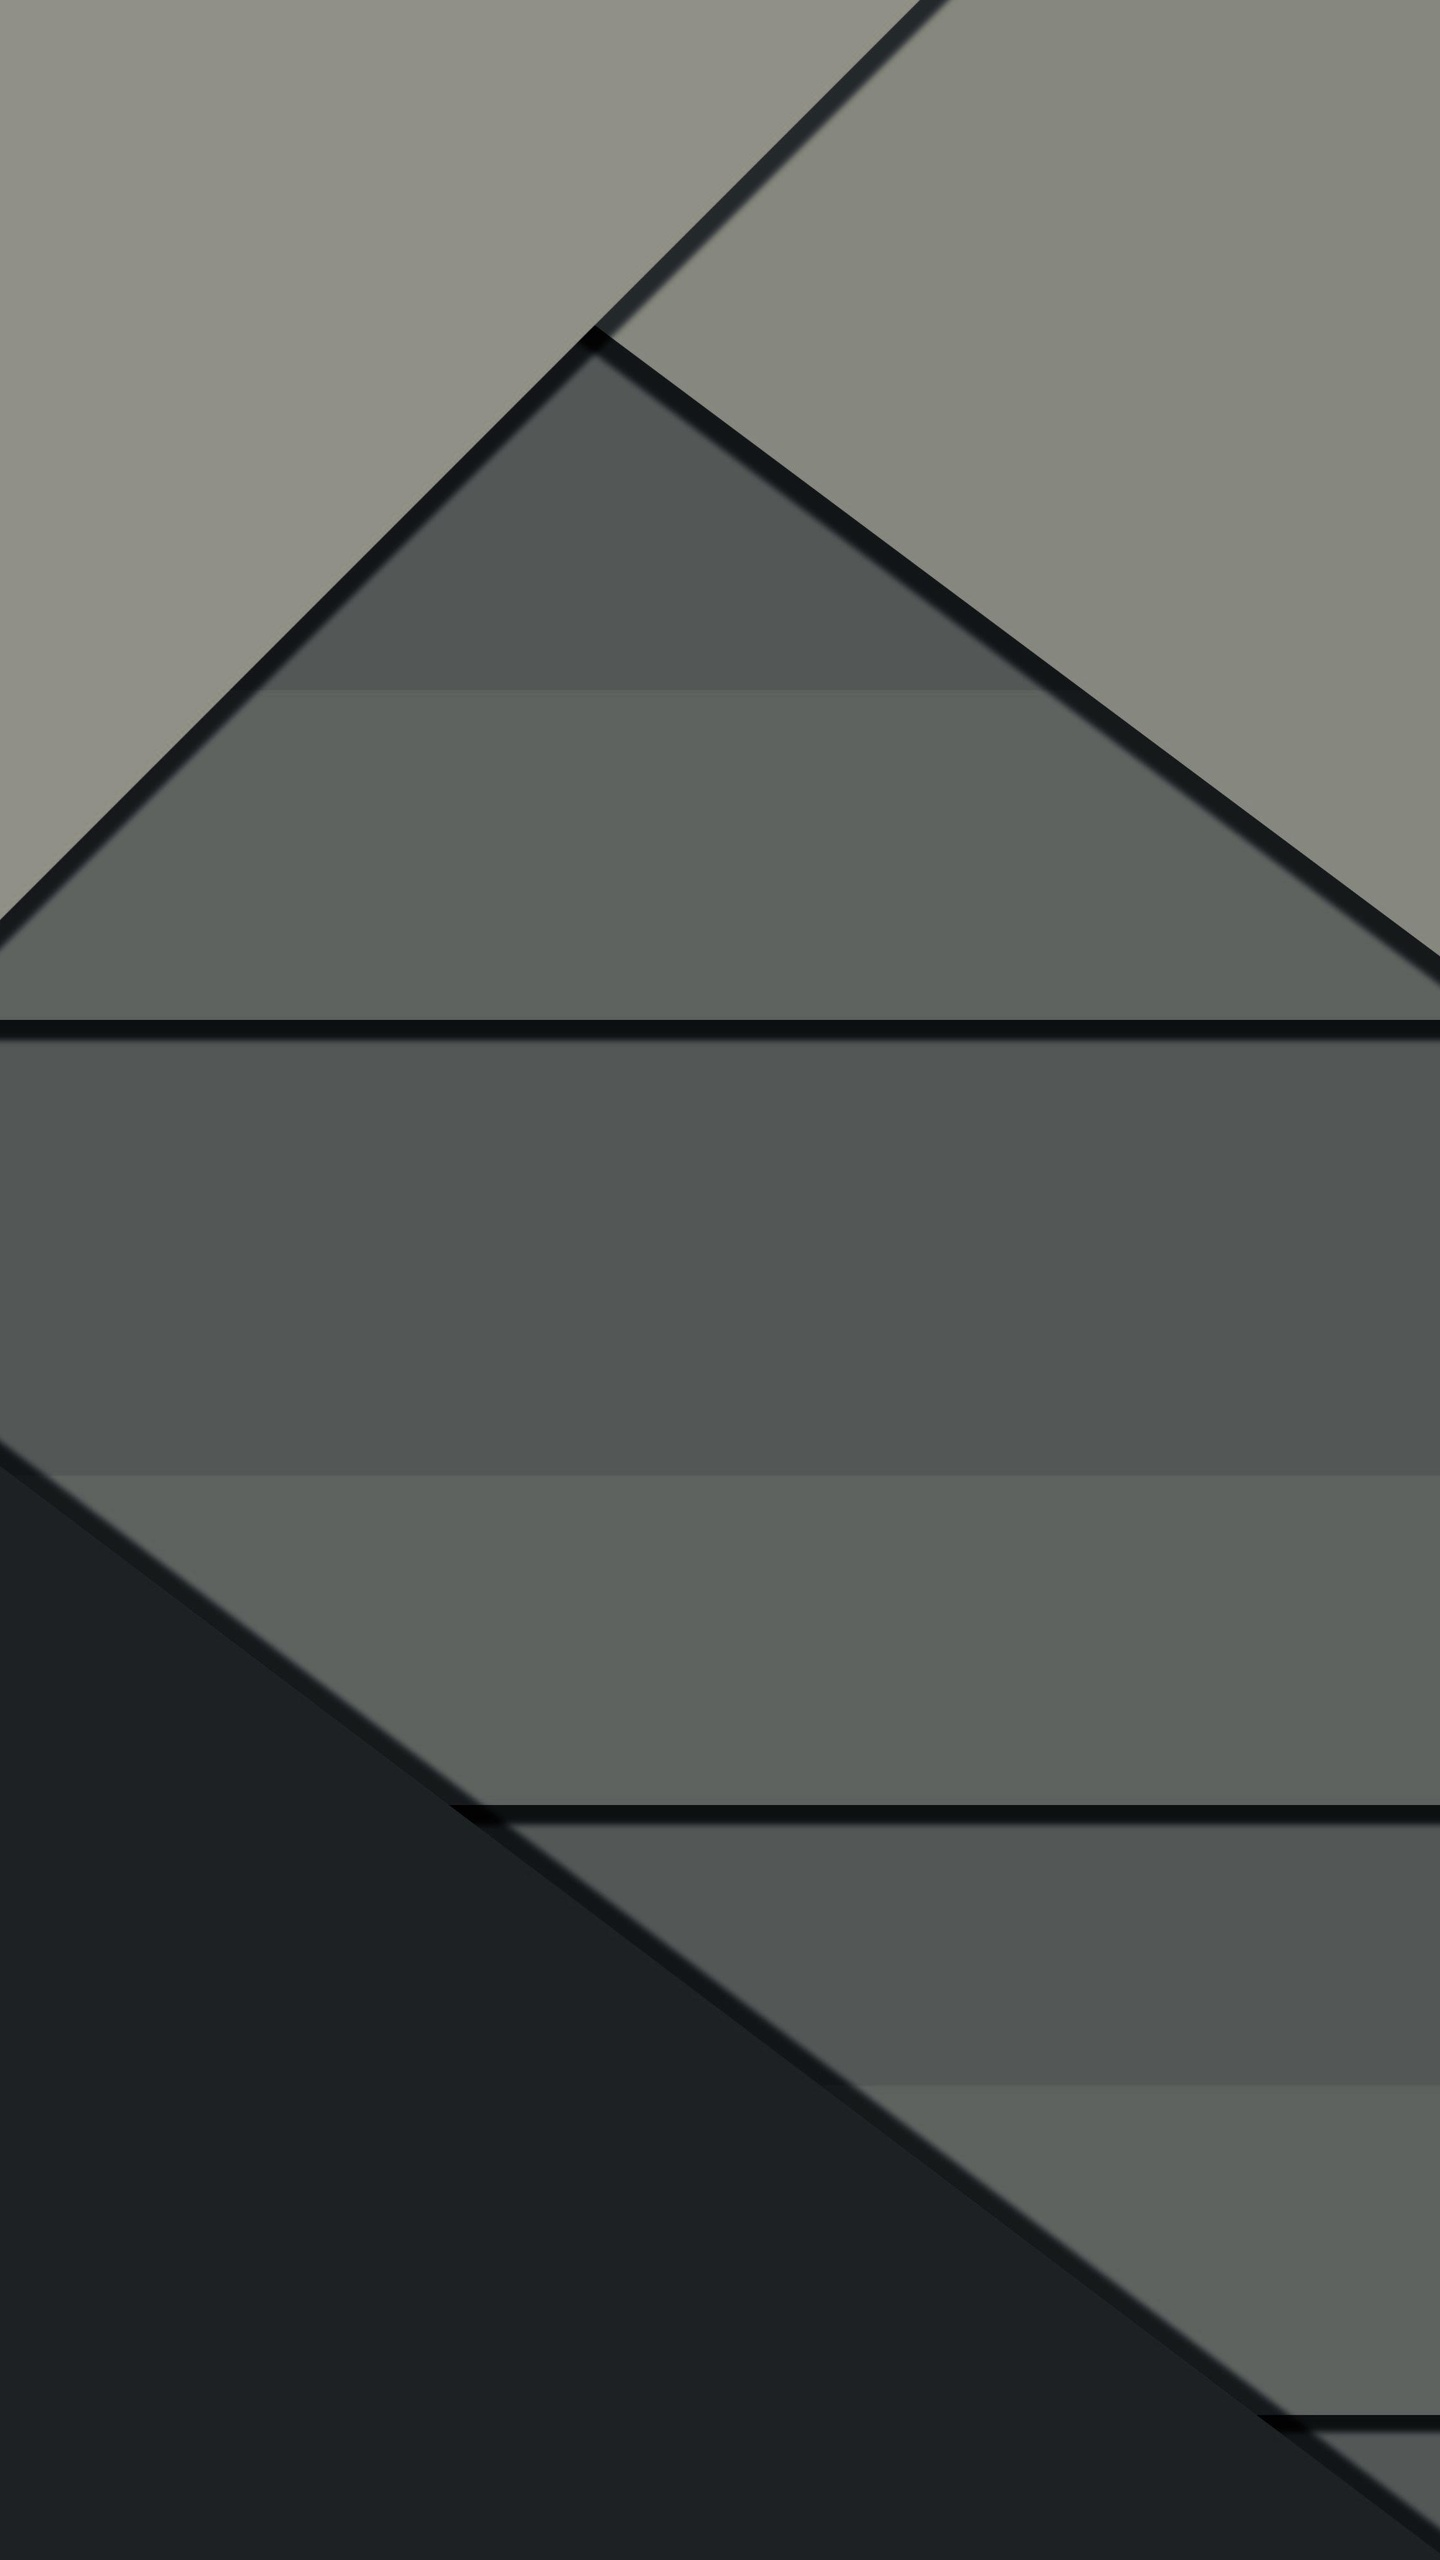 material-triangle-rt.jpg